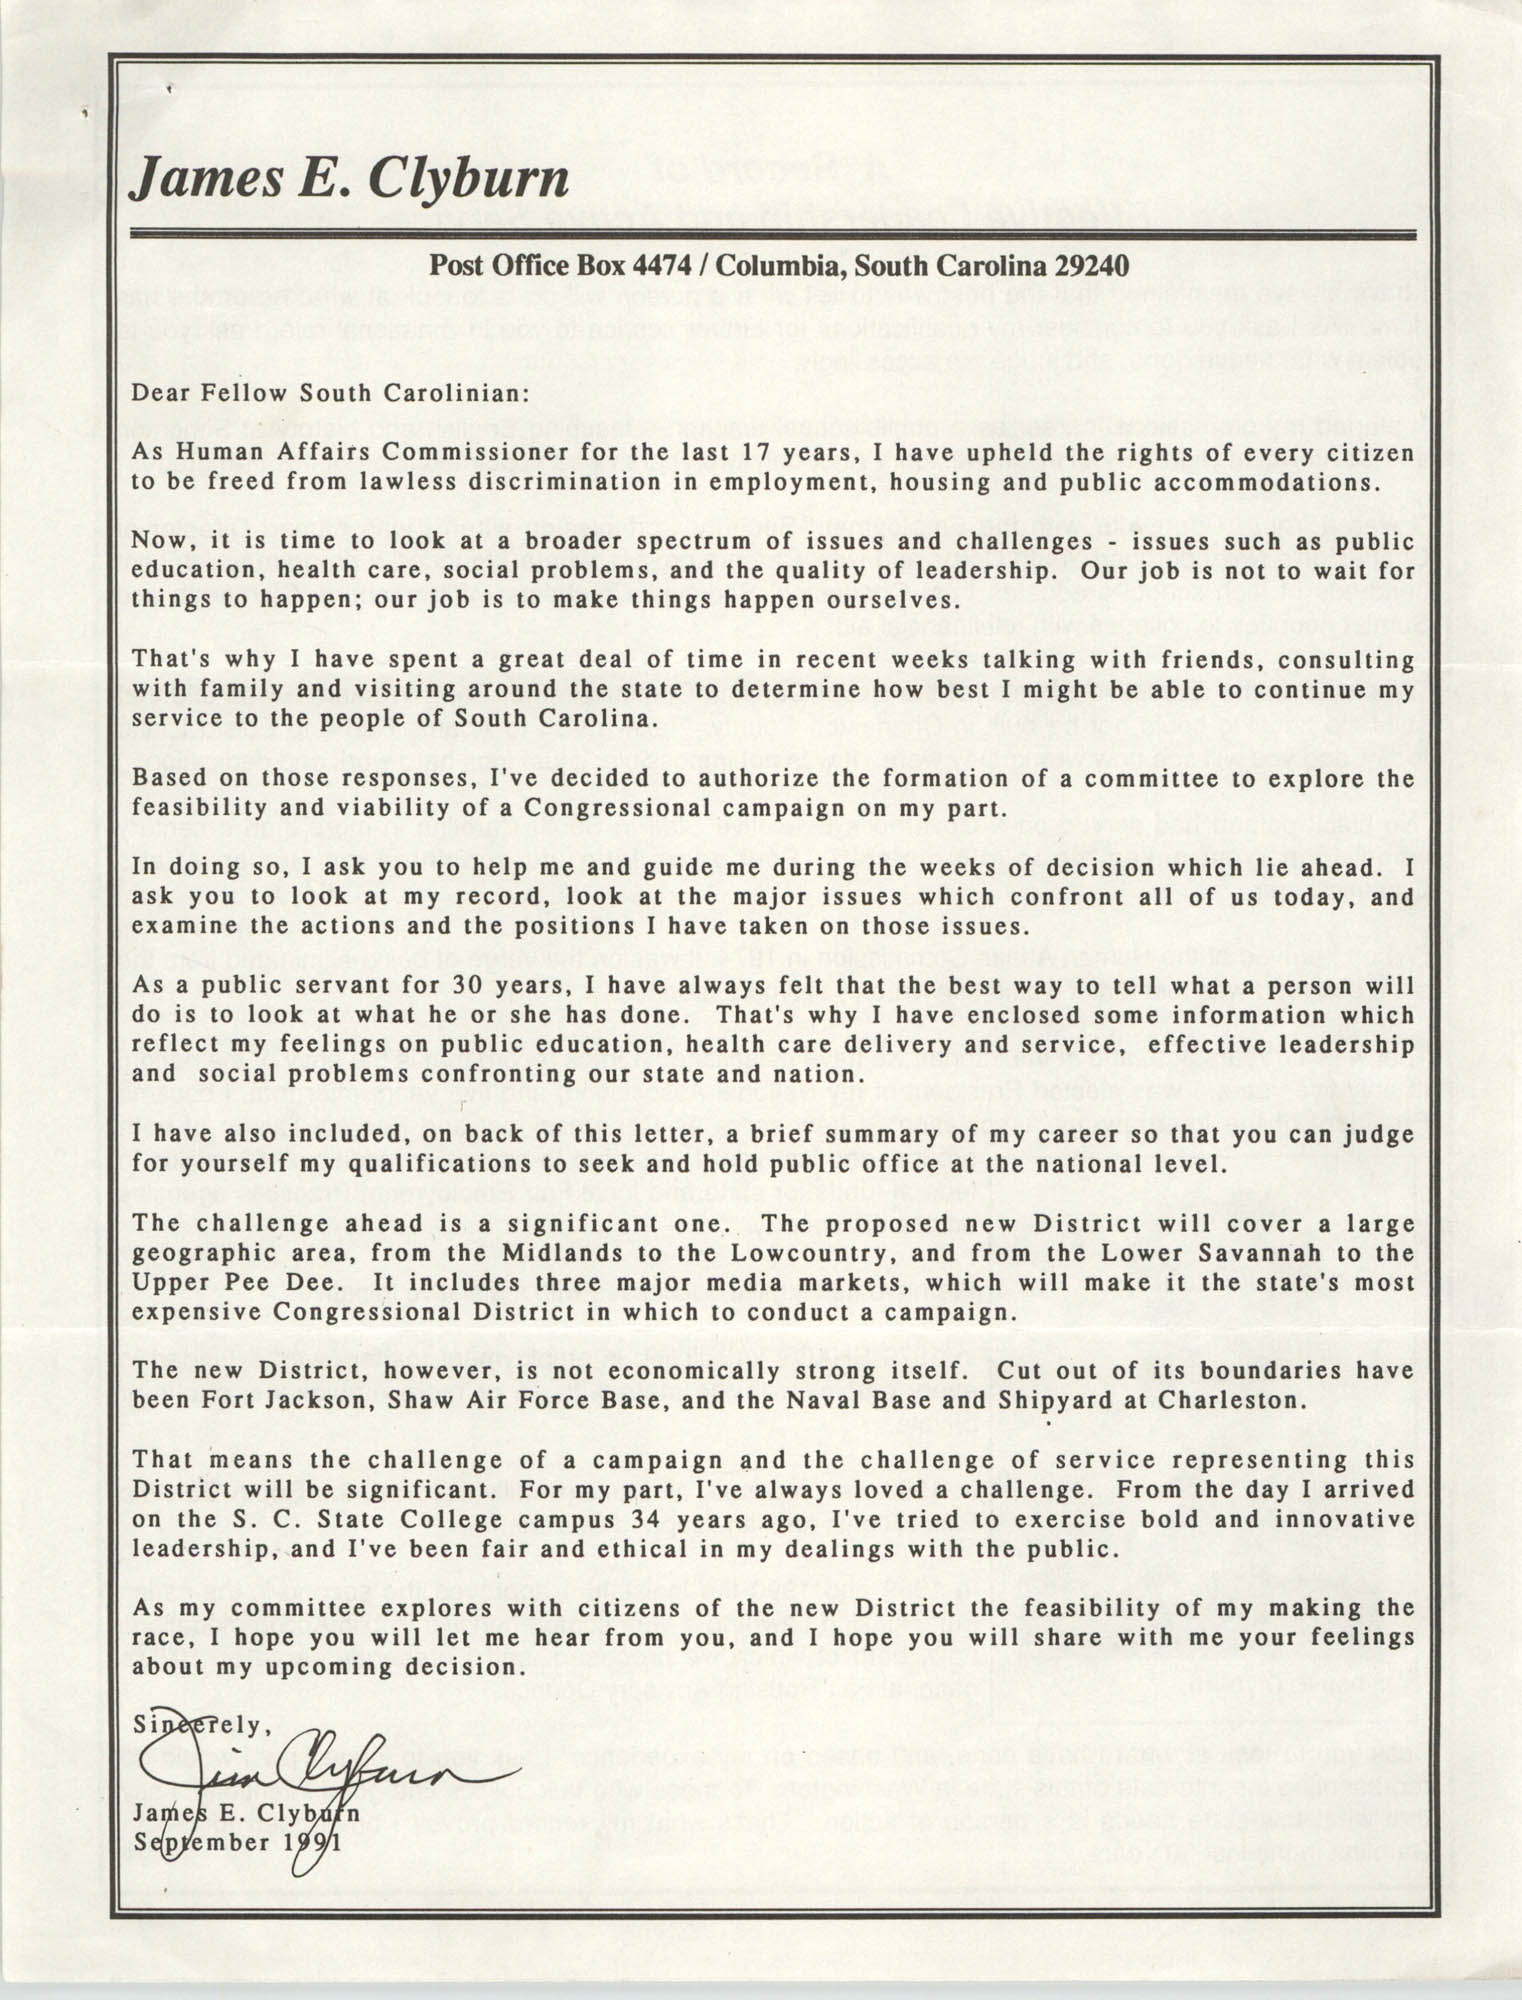 Letter from James E. Clyburn  to  South Carolinians, September 1991